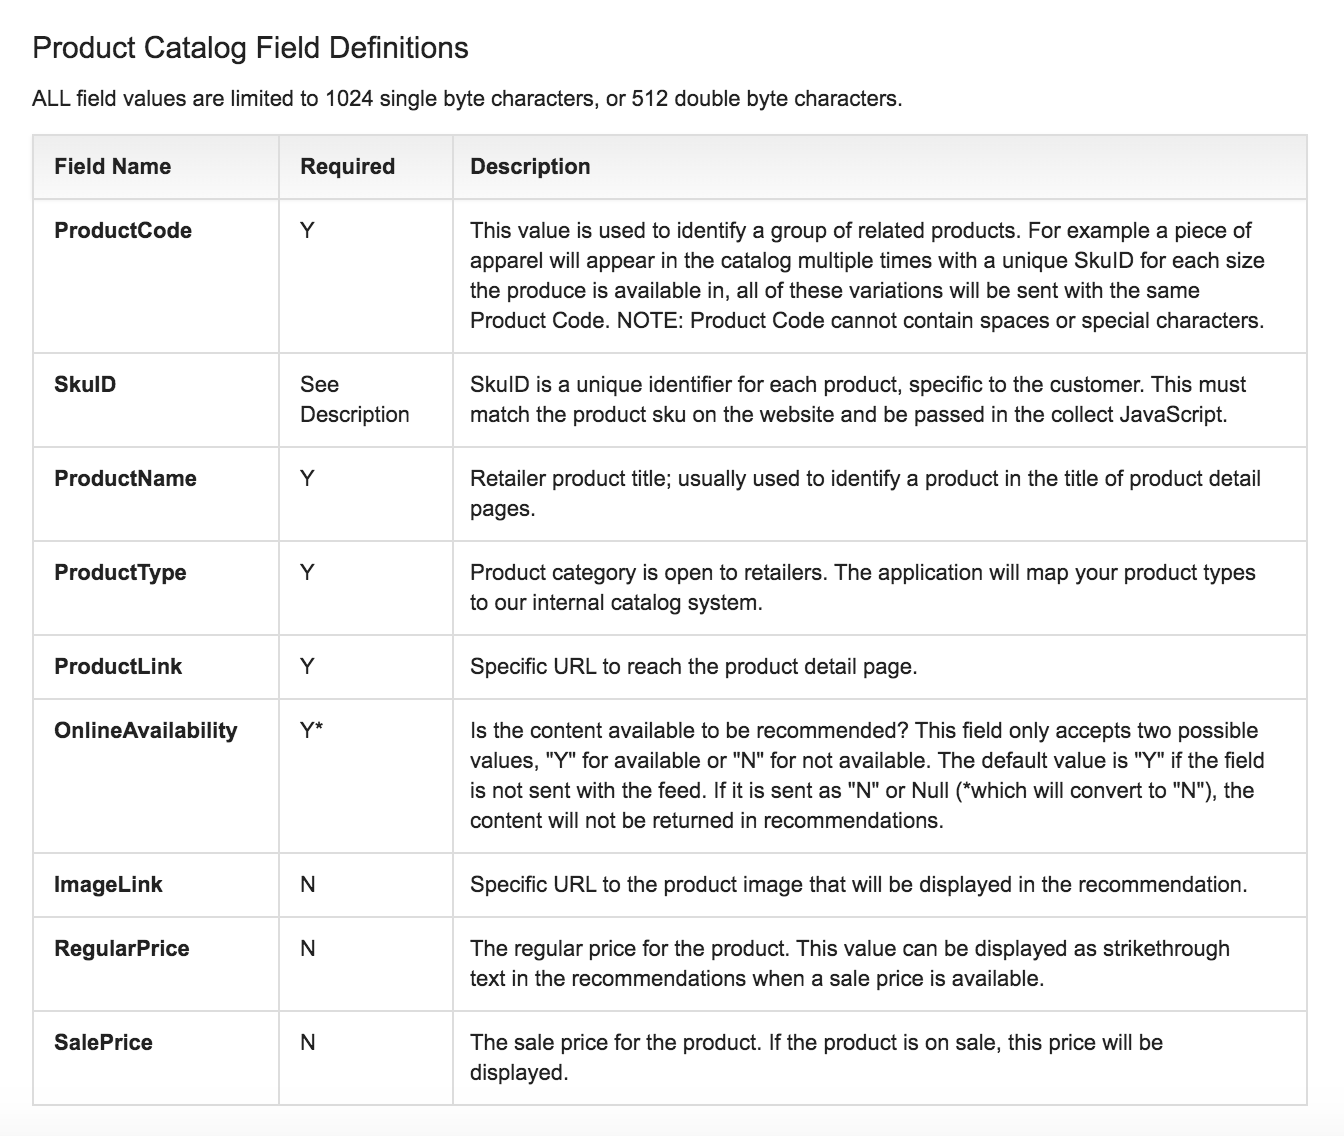 Product catalog field definitions